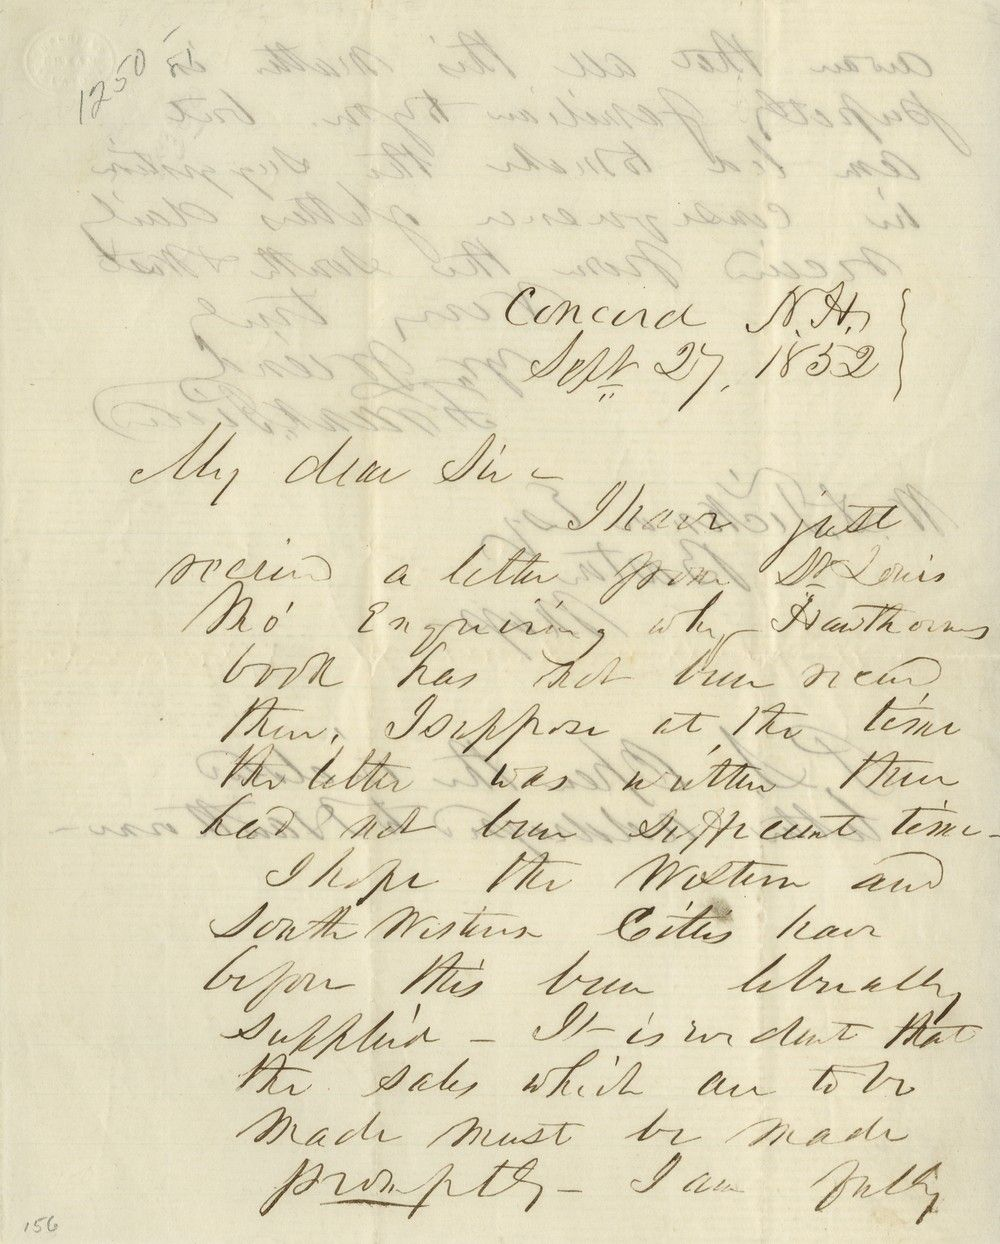 Candidate Franklin Pierce Writes About Nathaniel Hawthorne's Campaign Biography of Him